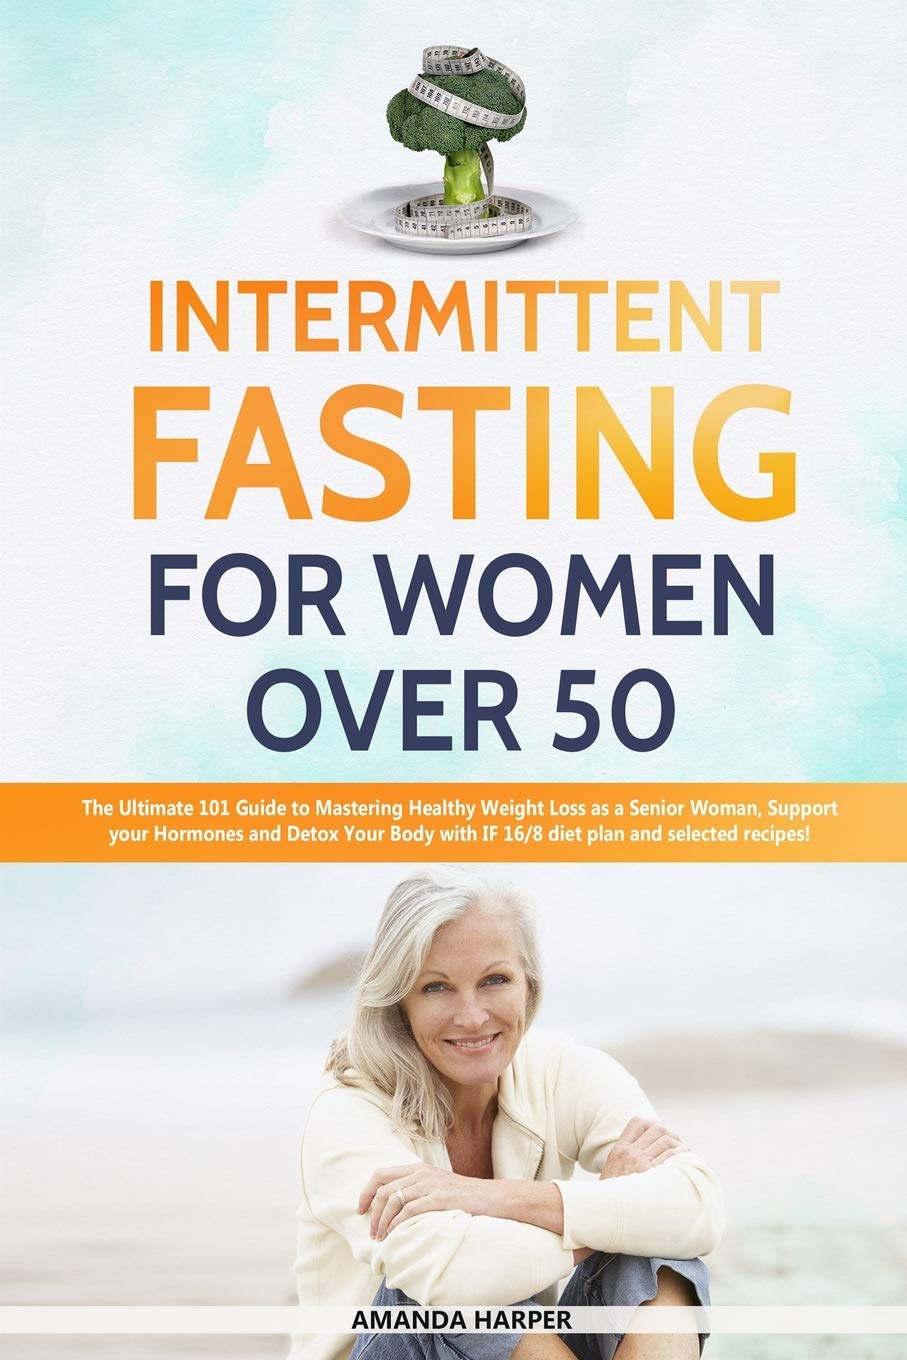 Intermittent Fasting For Women Over 50 The Ultimate 101 Guide To Mastering Healthy Weight Loss As An Aging Woman Support Your Hormones And Detox Recipes Weight Loss For Women Over